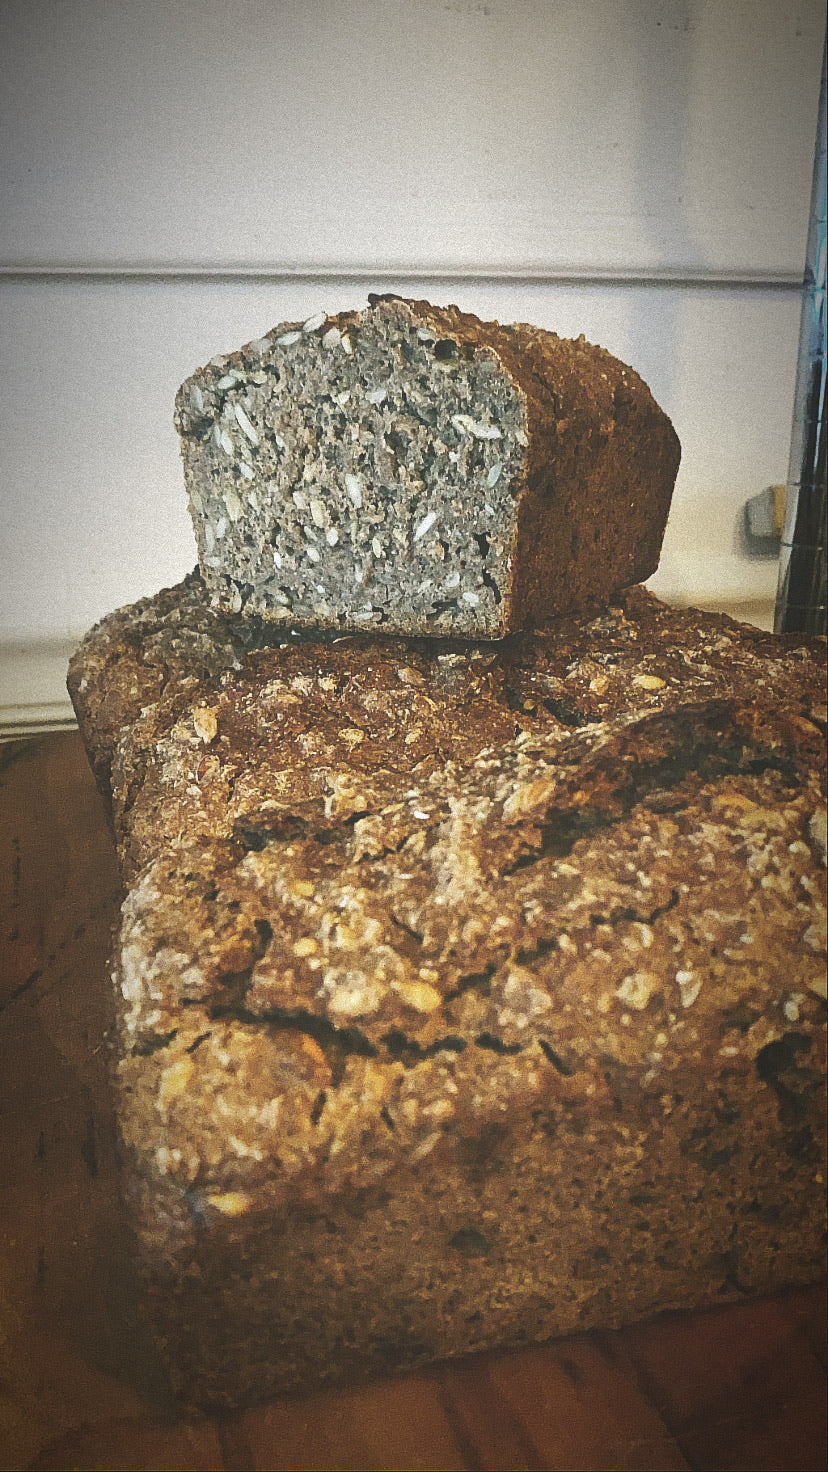 Danish Rye Bread - Whole Loaf, Holiday